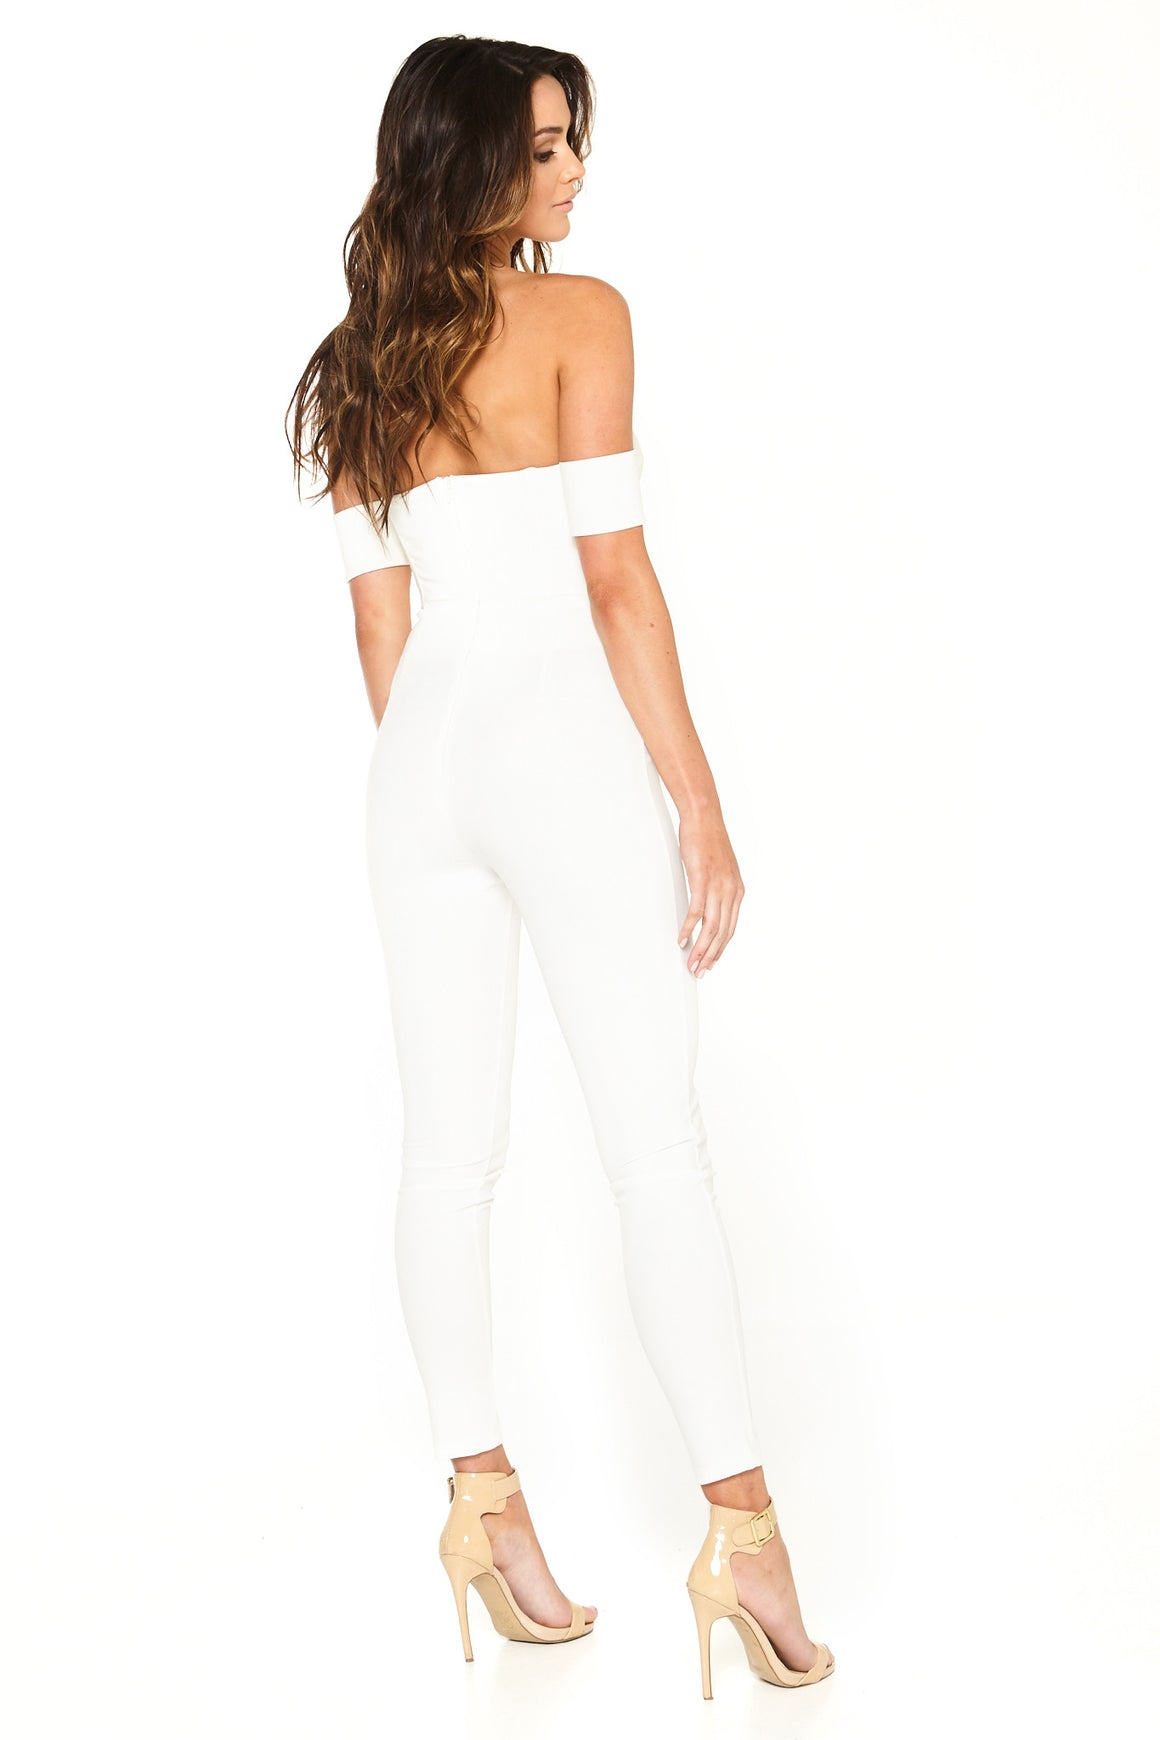 Cynthia Off-Shoulder Jumpsuit - White [SAMPLE SALE]